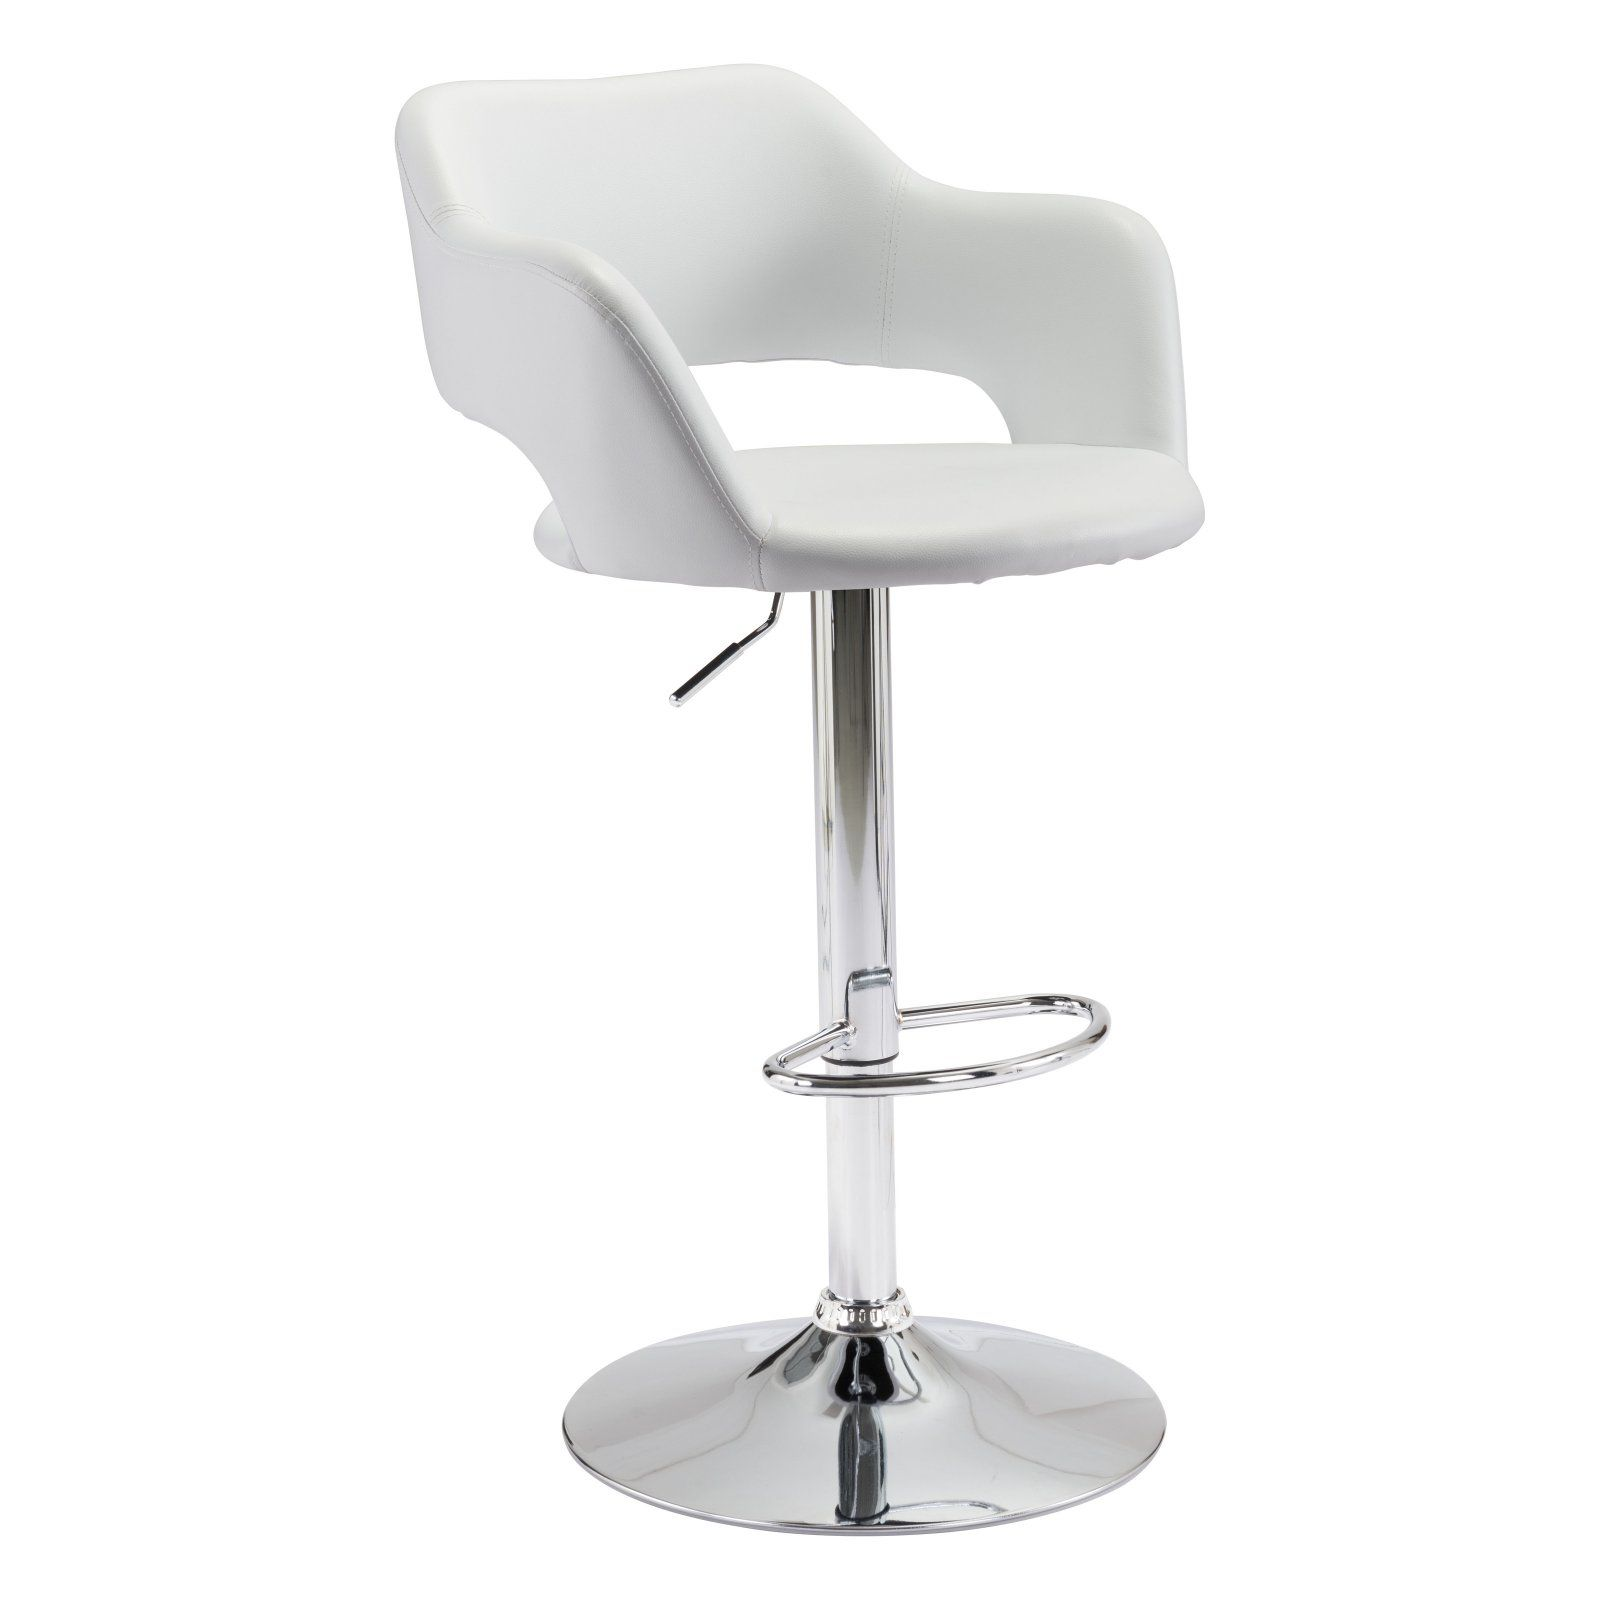 Incredible Zuo Modern Contemporary Hysteria Adjustable Bar Stool White Ibusinesslaw Wood Chair Design Ideas Ibusinesslaworg